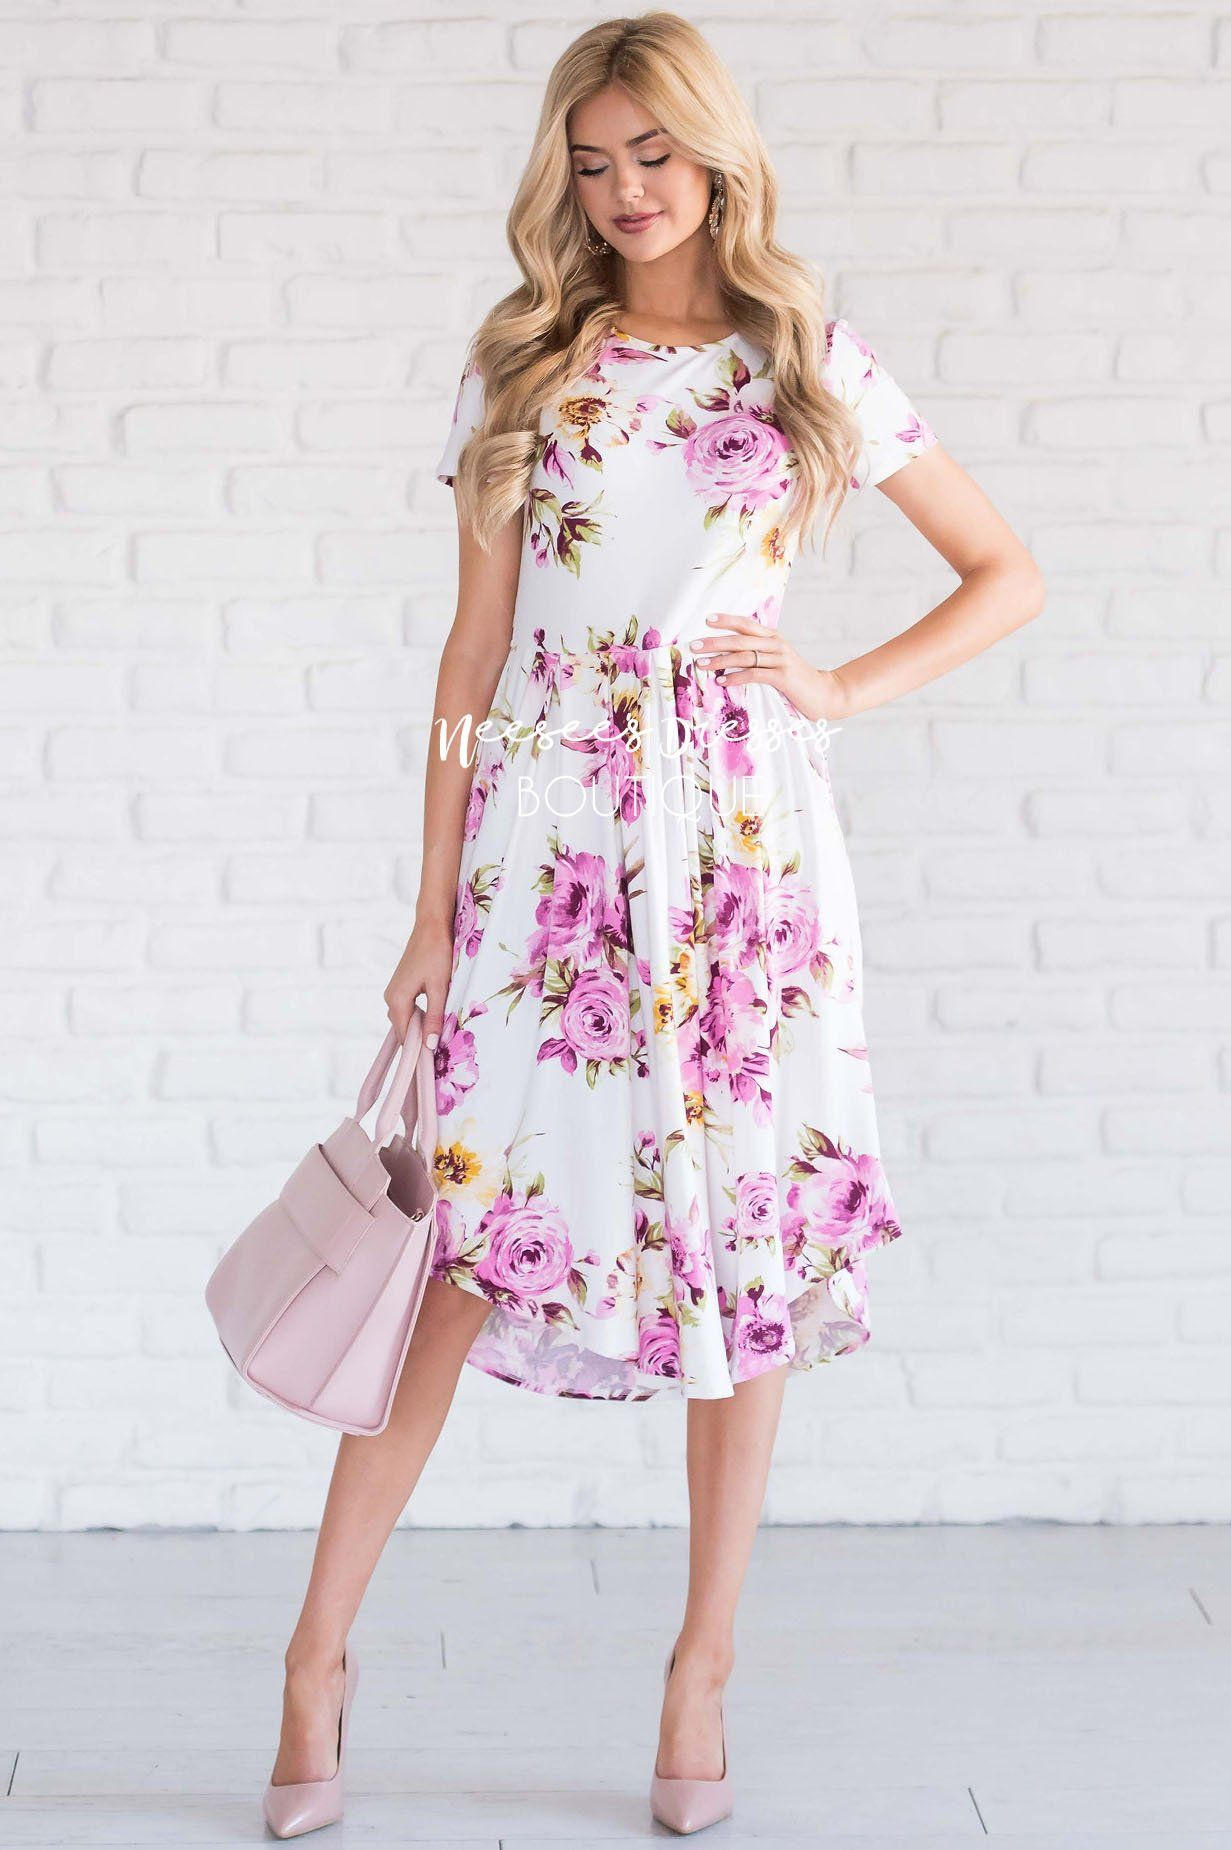 Ivory Orchid Yellow Carnation Floral Pocket Dress | Best Modest Boutique - Neesee's  Dresses | Modest dresses, Neesees dresses, Dresses